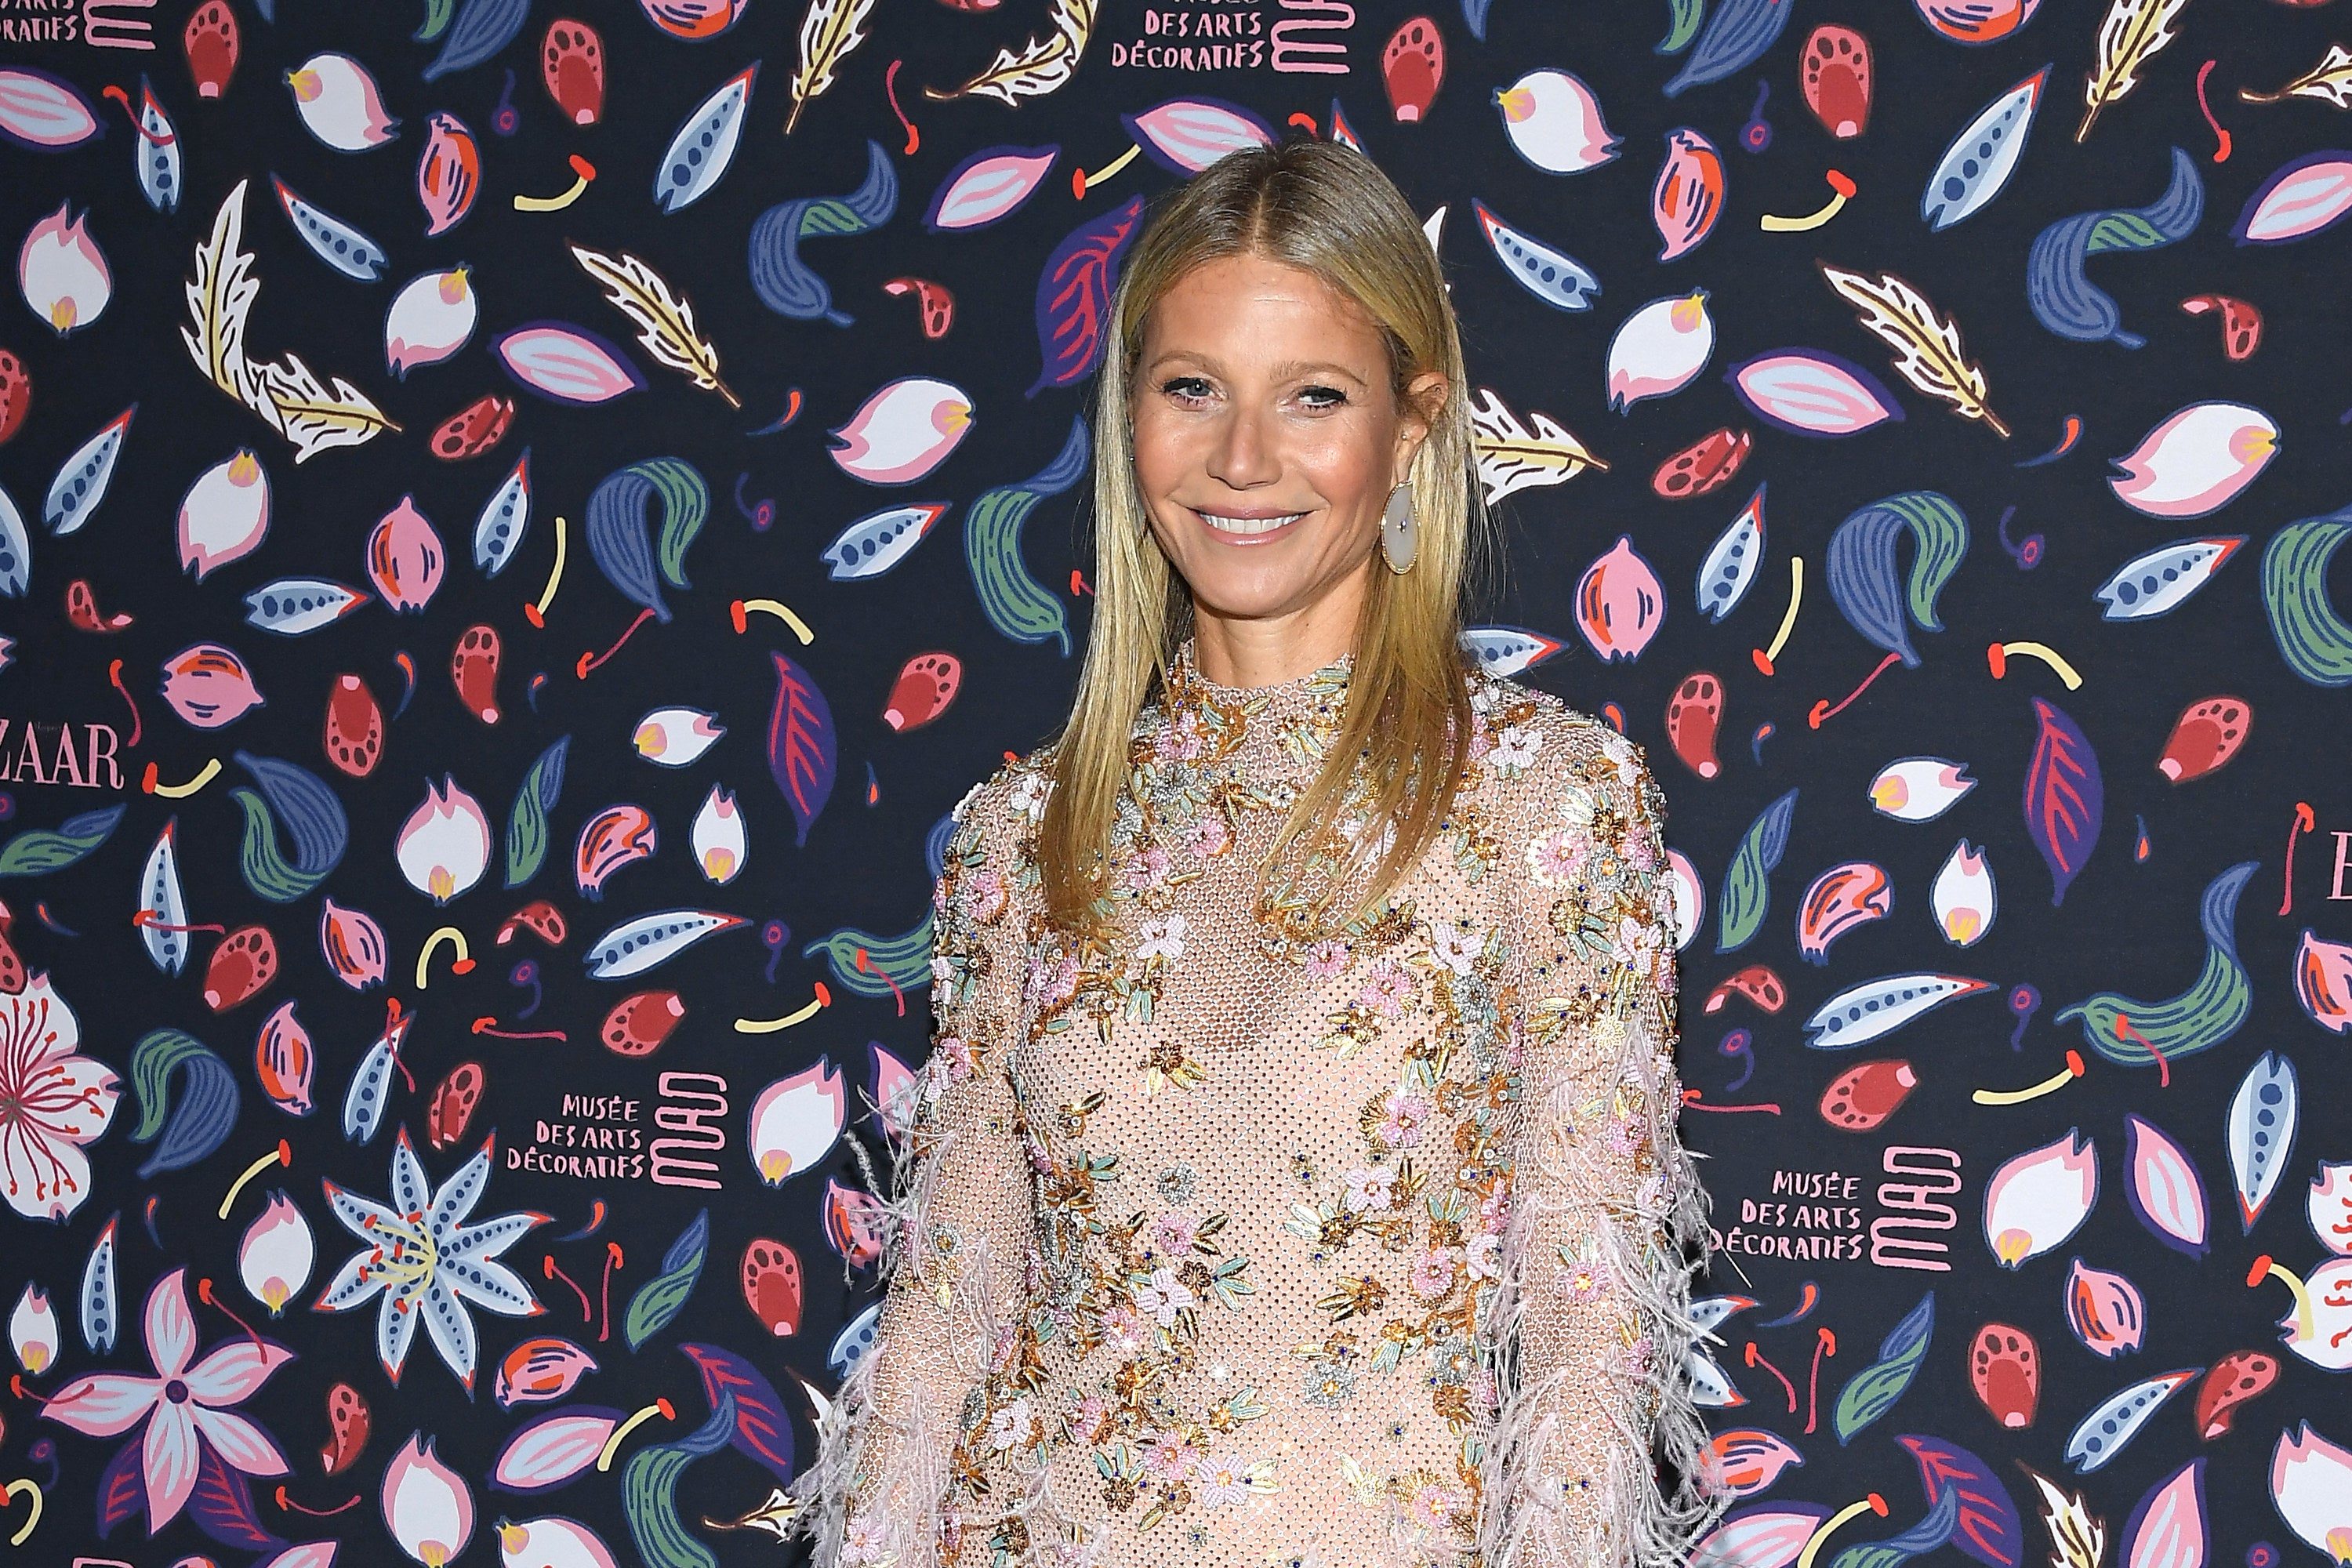 """Gwyneth Paltrow Got Candid About Giving Birth And How She """"Almost Died"""" While In Labor With Her Daughter Apple"""